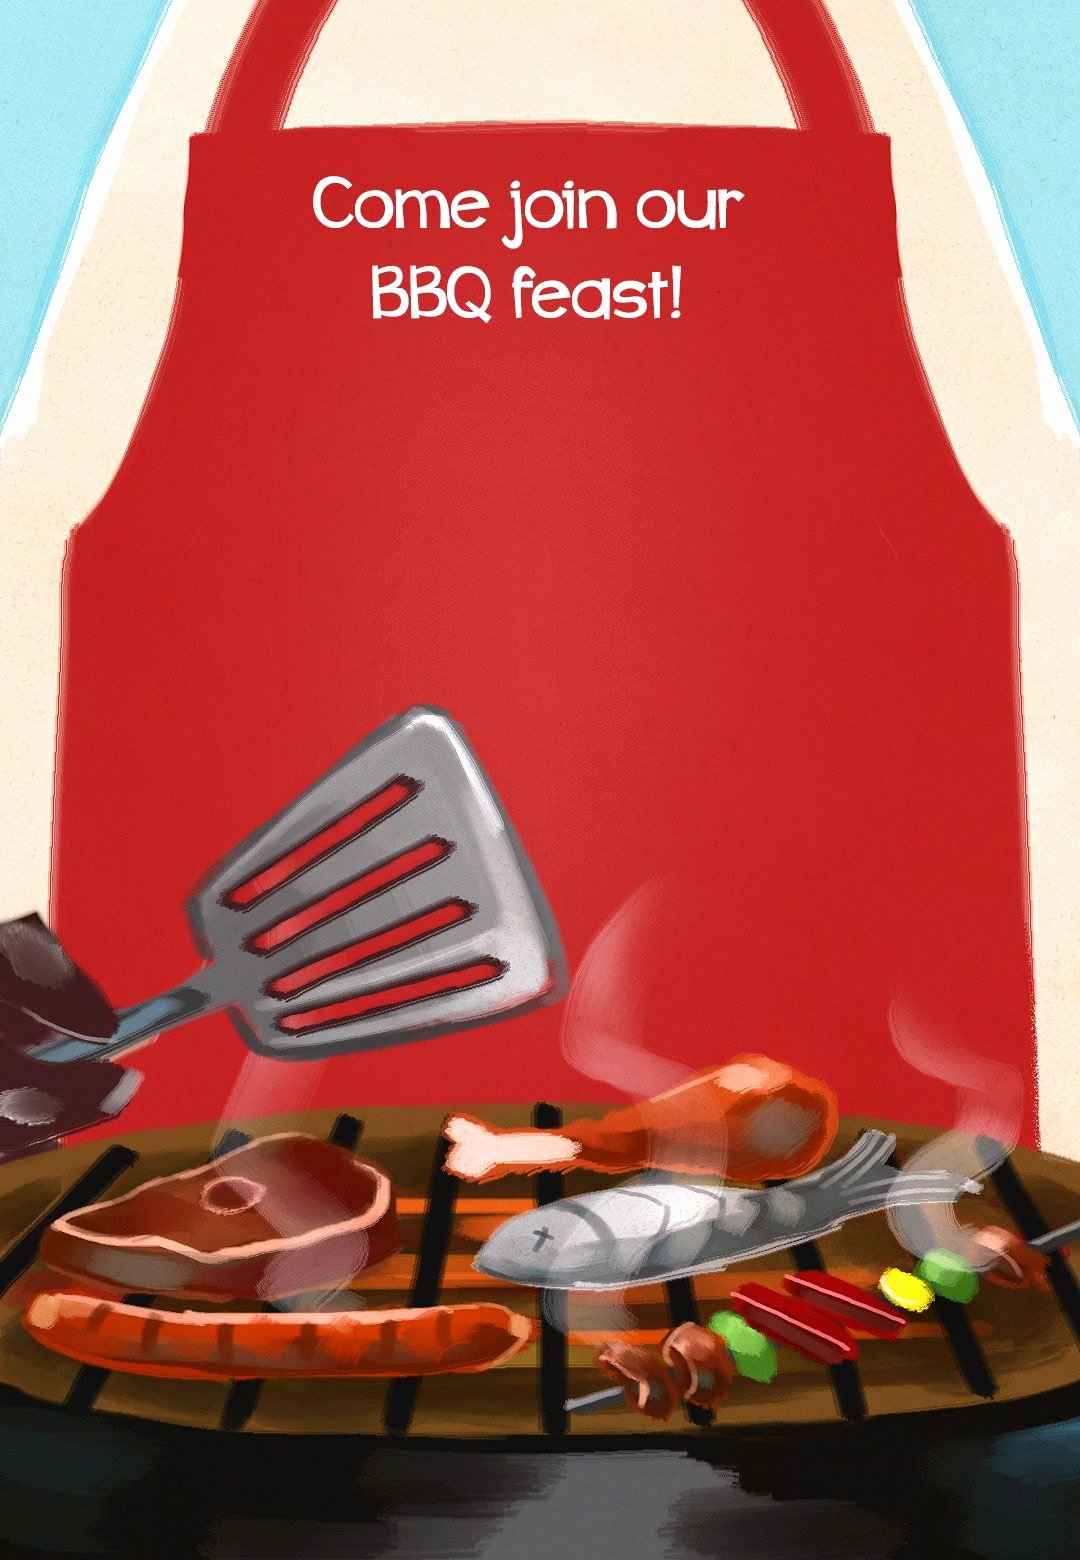 Barbecue Invitation Free Template Fresh Bbq Feast Free Printable Party Invitation Template